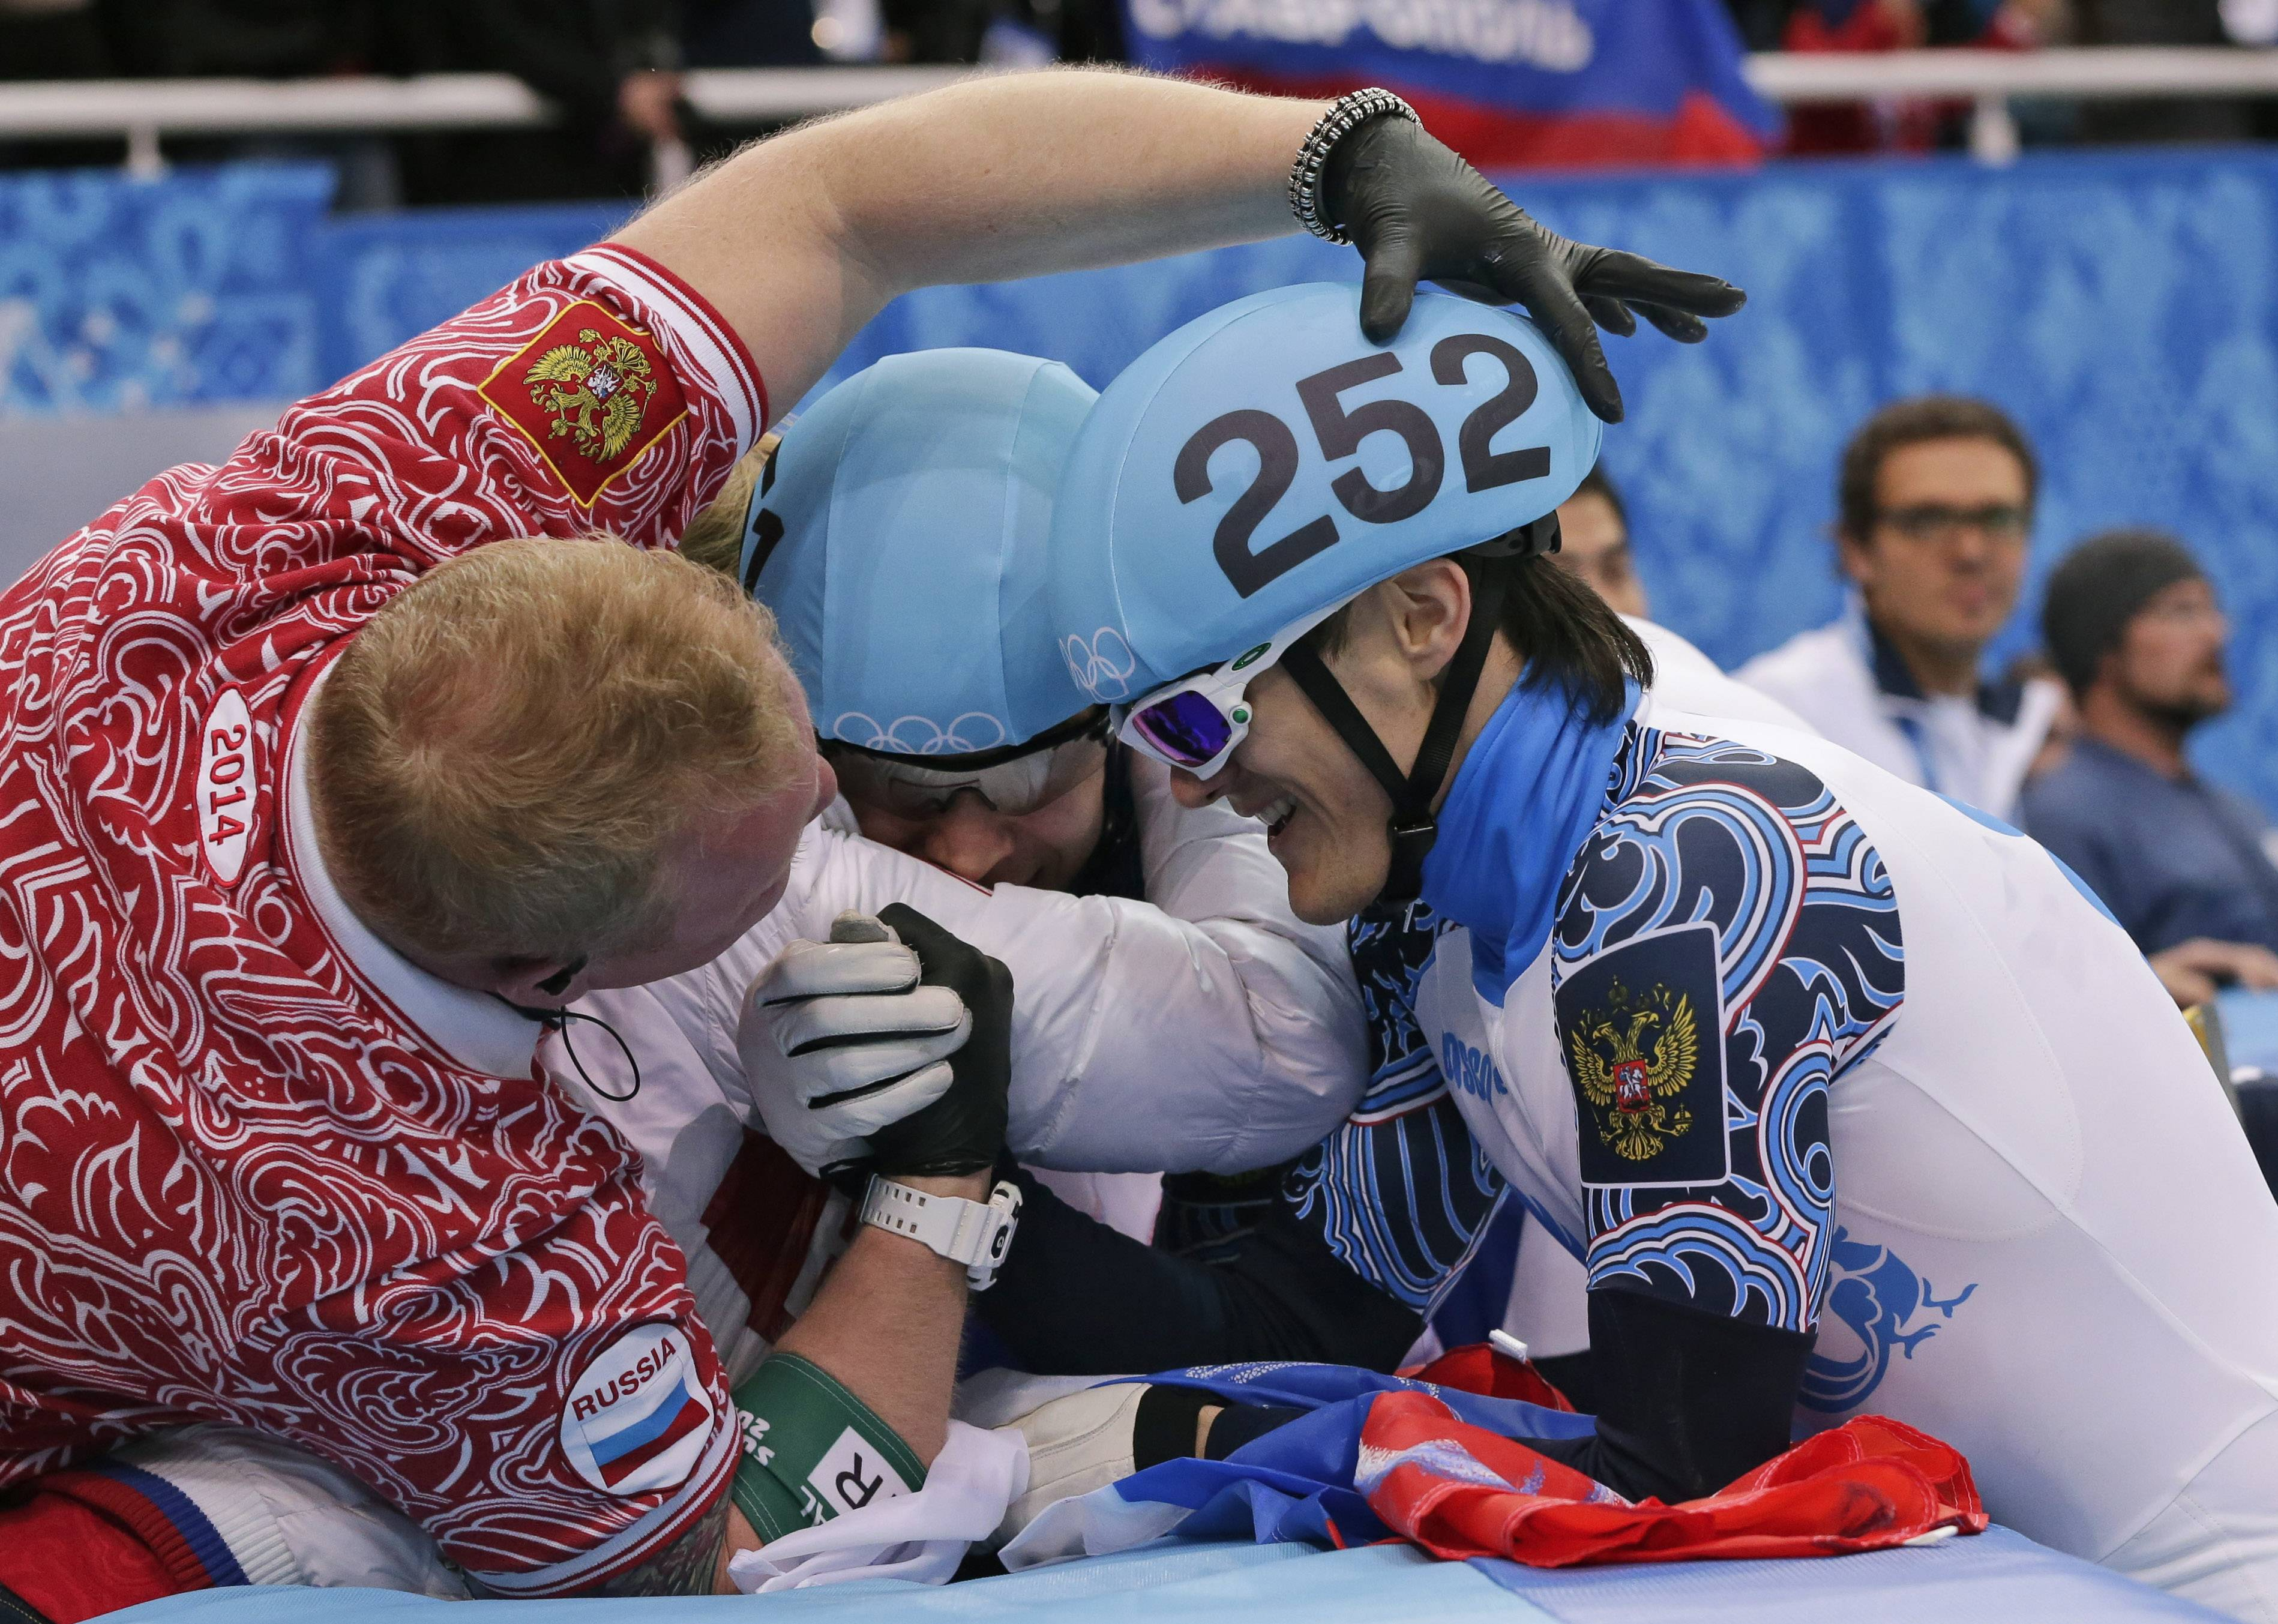 Vladimir Grigorev of Russia, right, celebrates with teammates after the won the men's 5000m short track speedskating relay final.